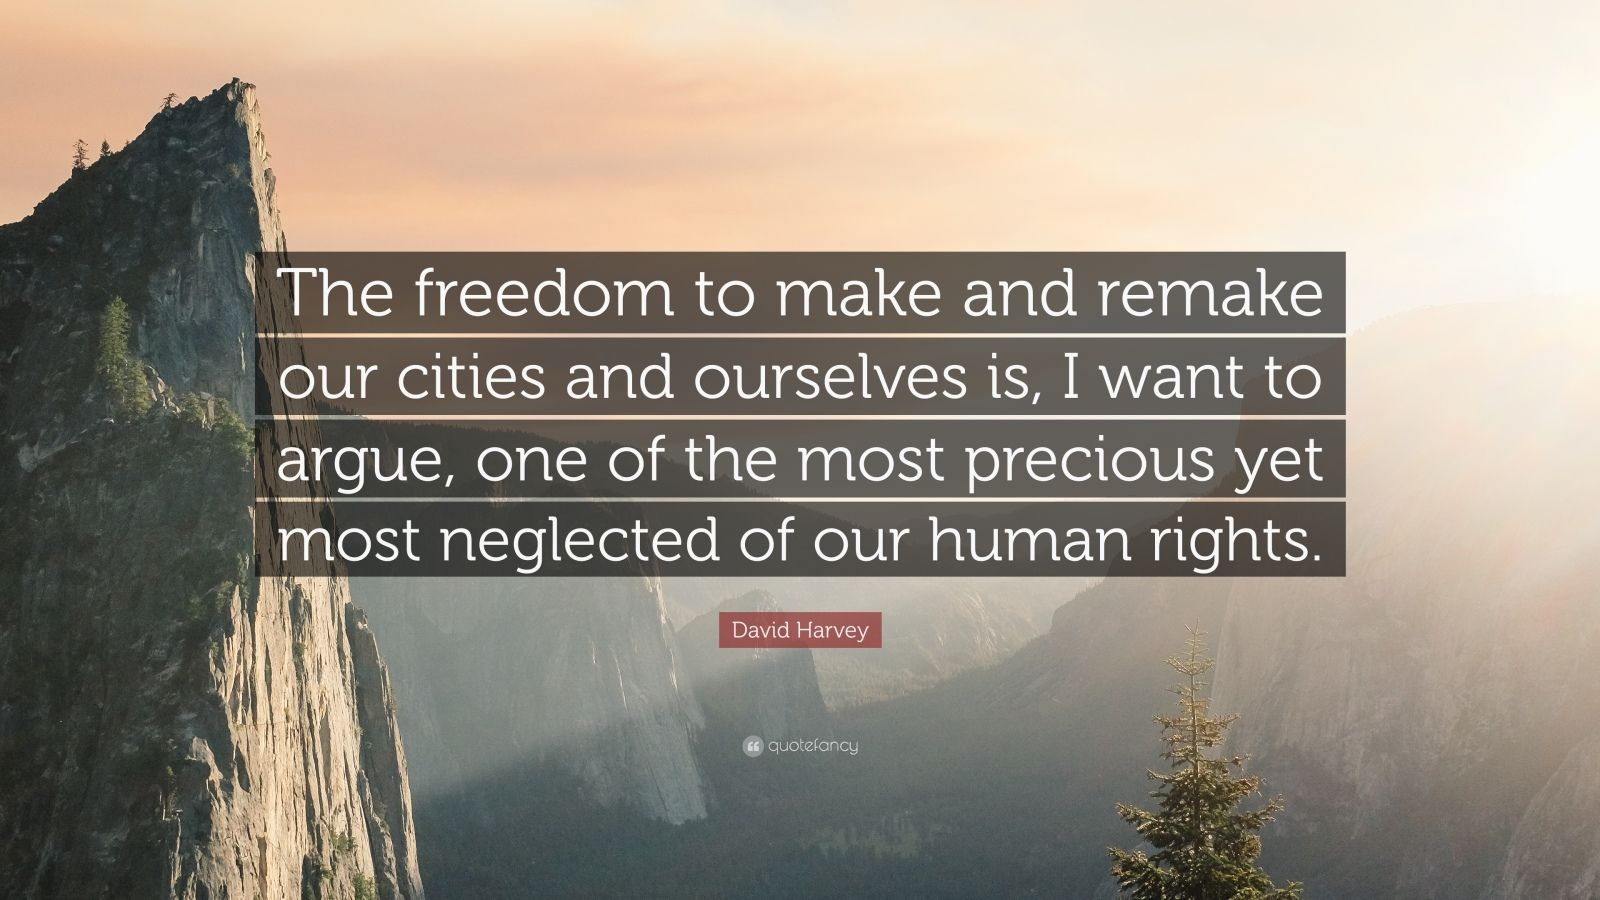 """David Harvey Quote: """"The freedom to make and remake our cities and ourselves is, I want to argue, one of the most precious yet most neglected of our human rights."""""""